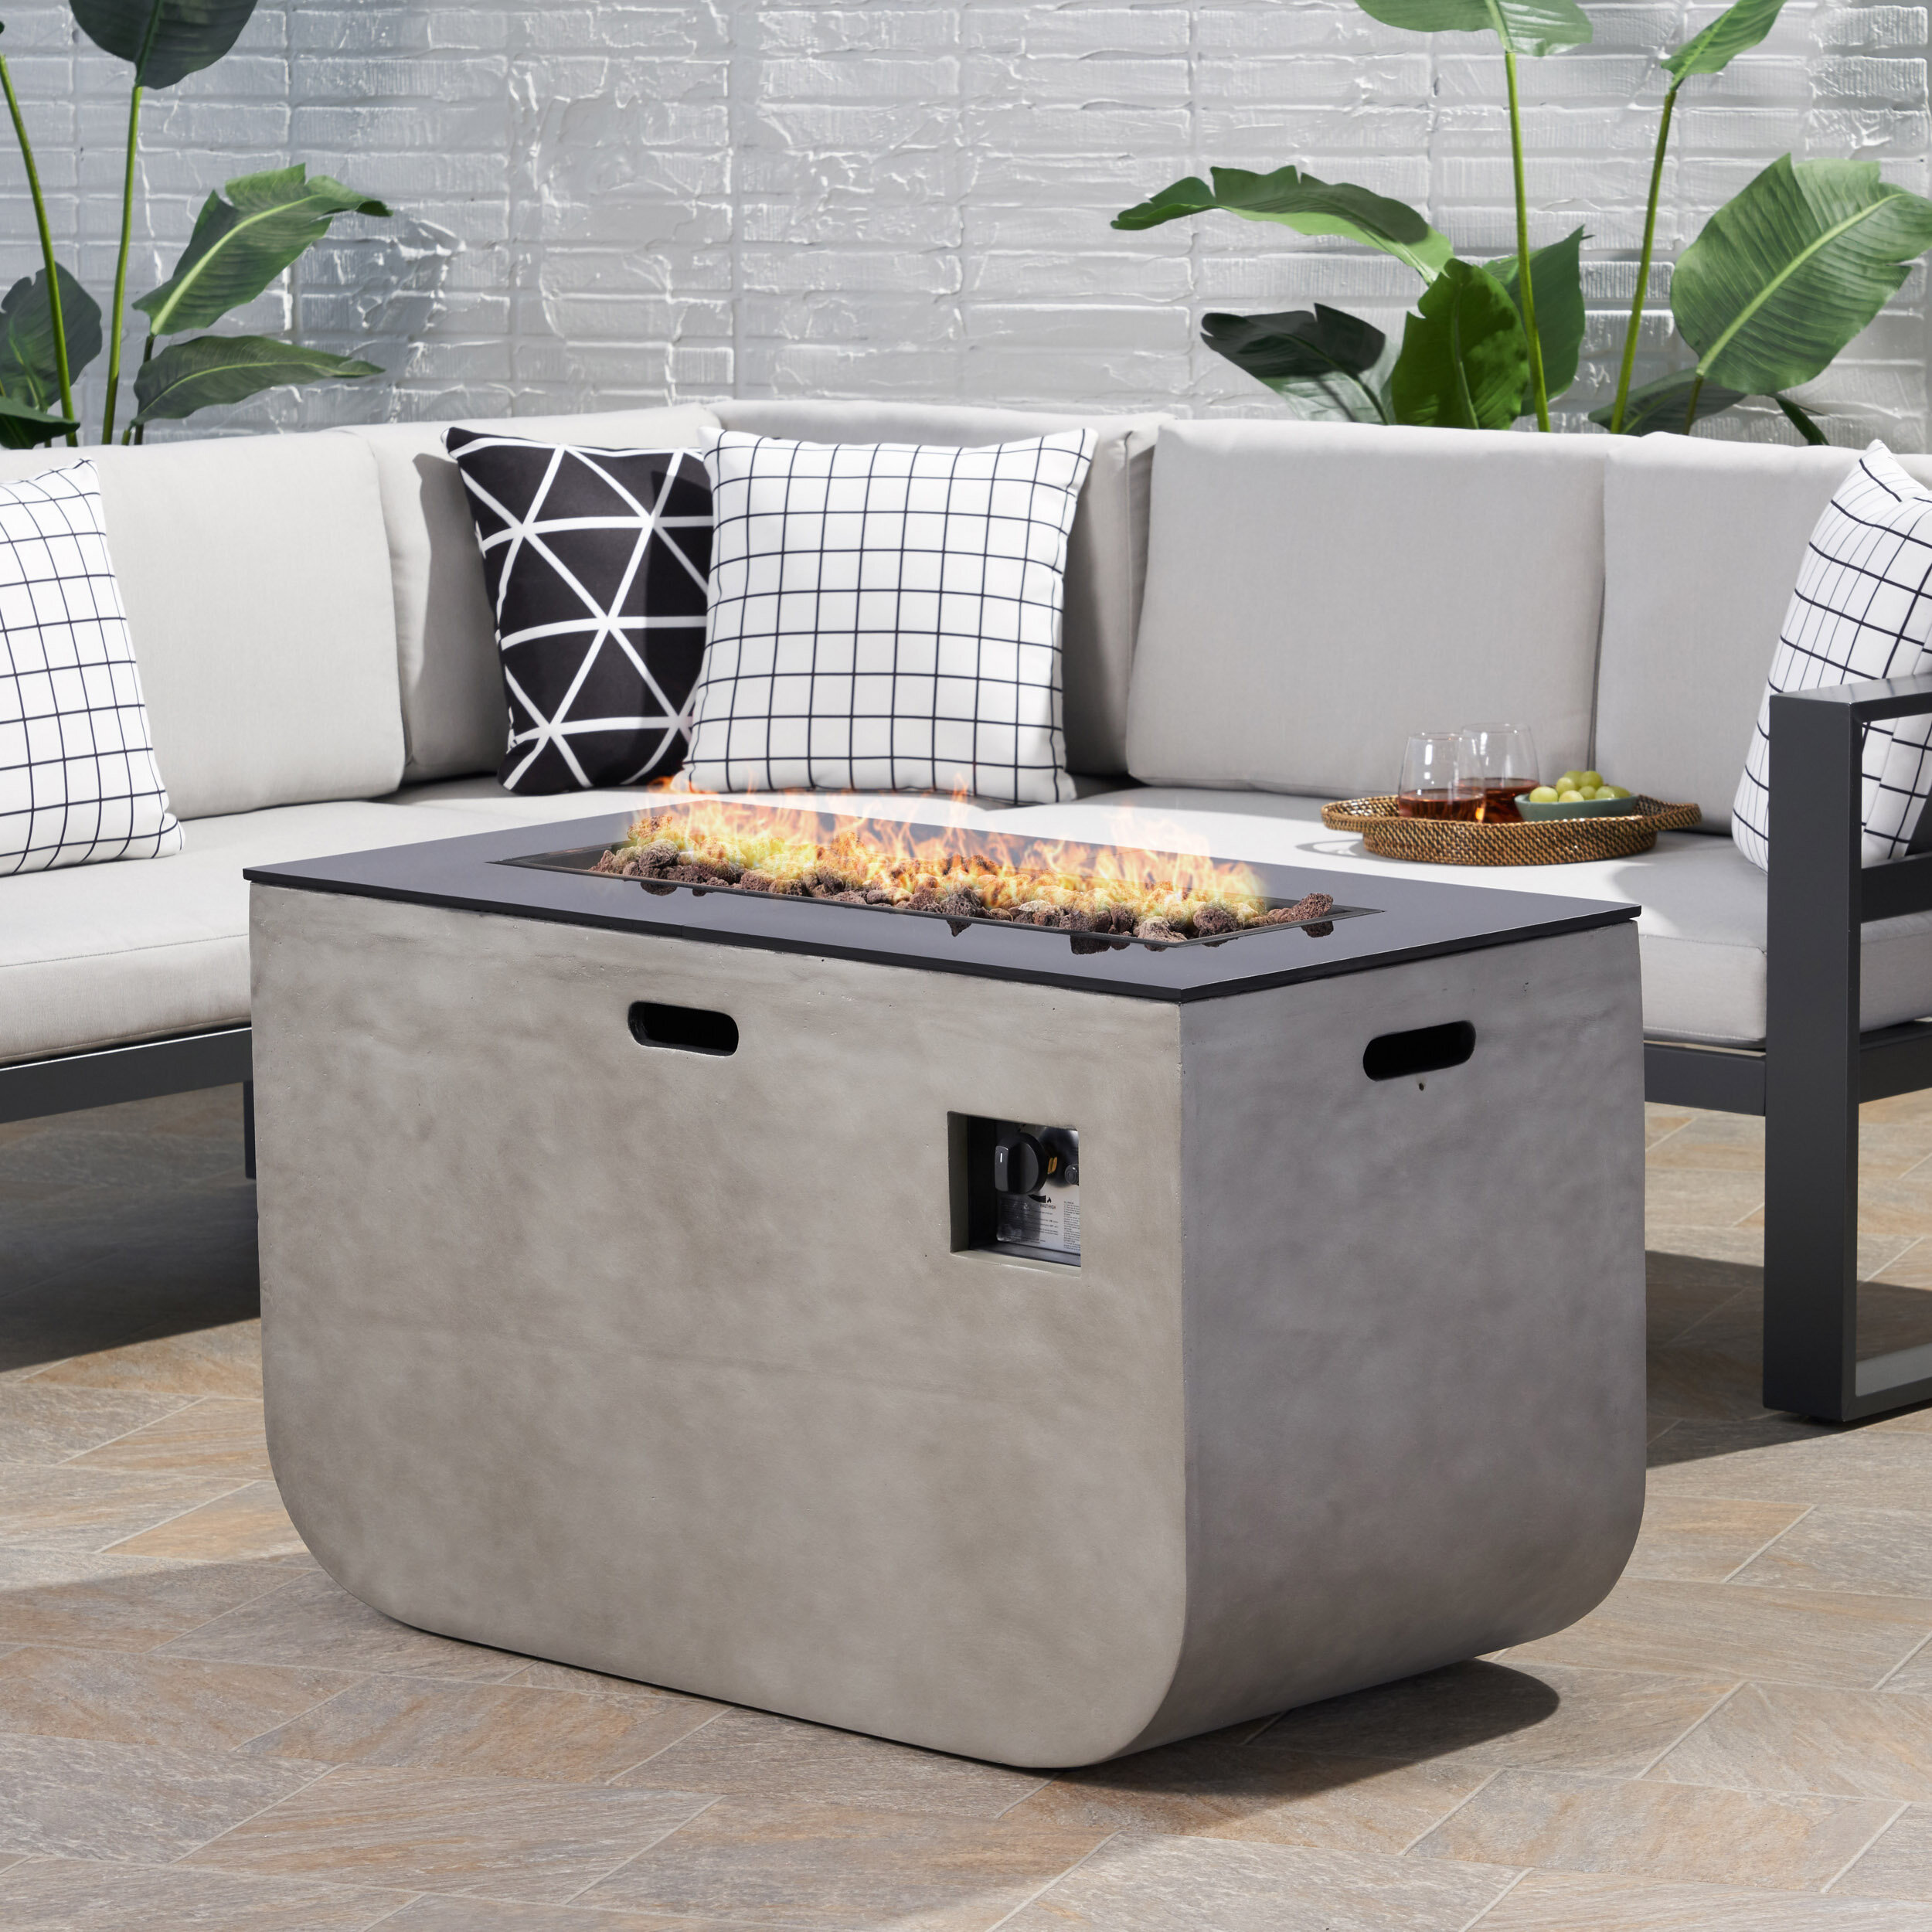 24 X 48 Table All Outdoor Fireplaces Fire Pits You Ll Love In 2021 Wayfair